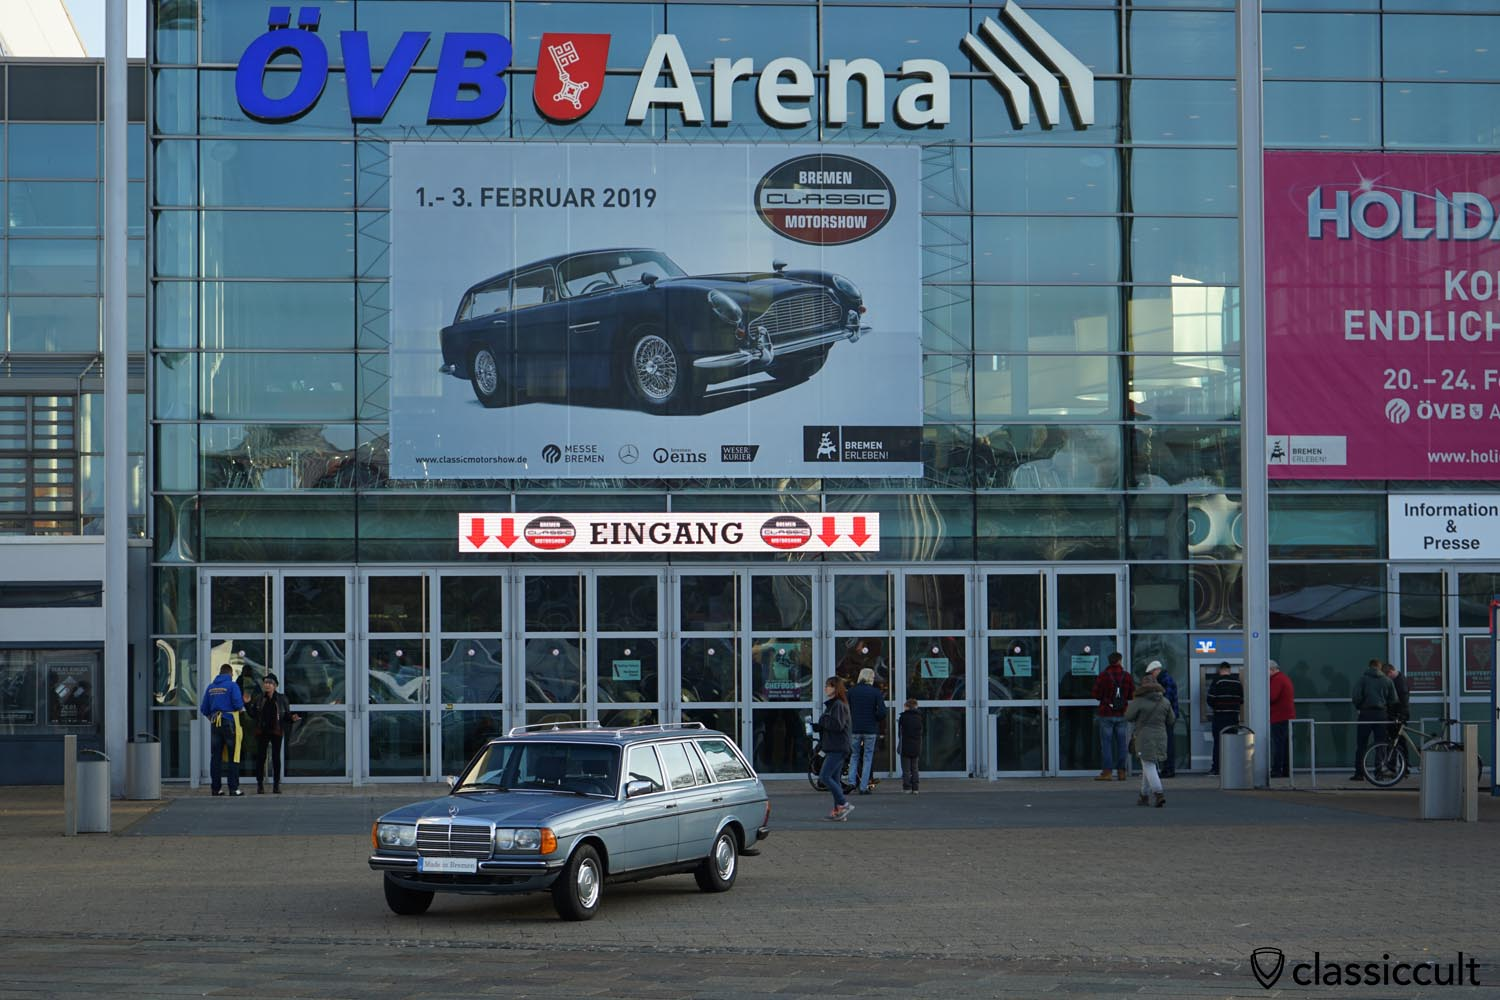 Welcome to Bremen Classic Motorshow, 9:30 a.m., Sunday, 3. February 2019